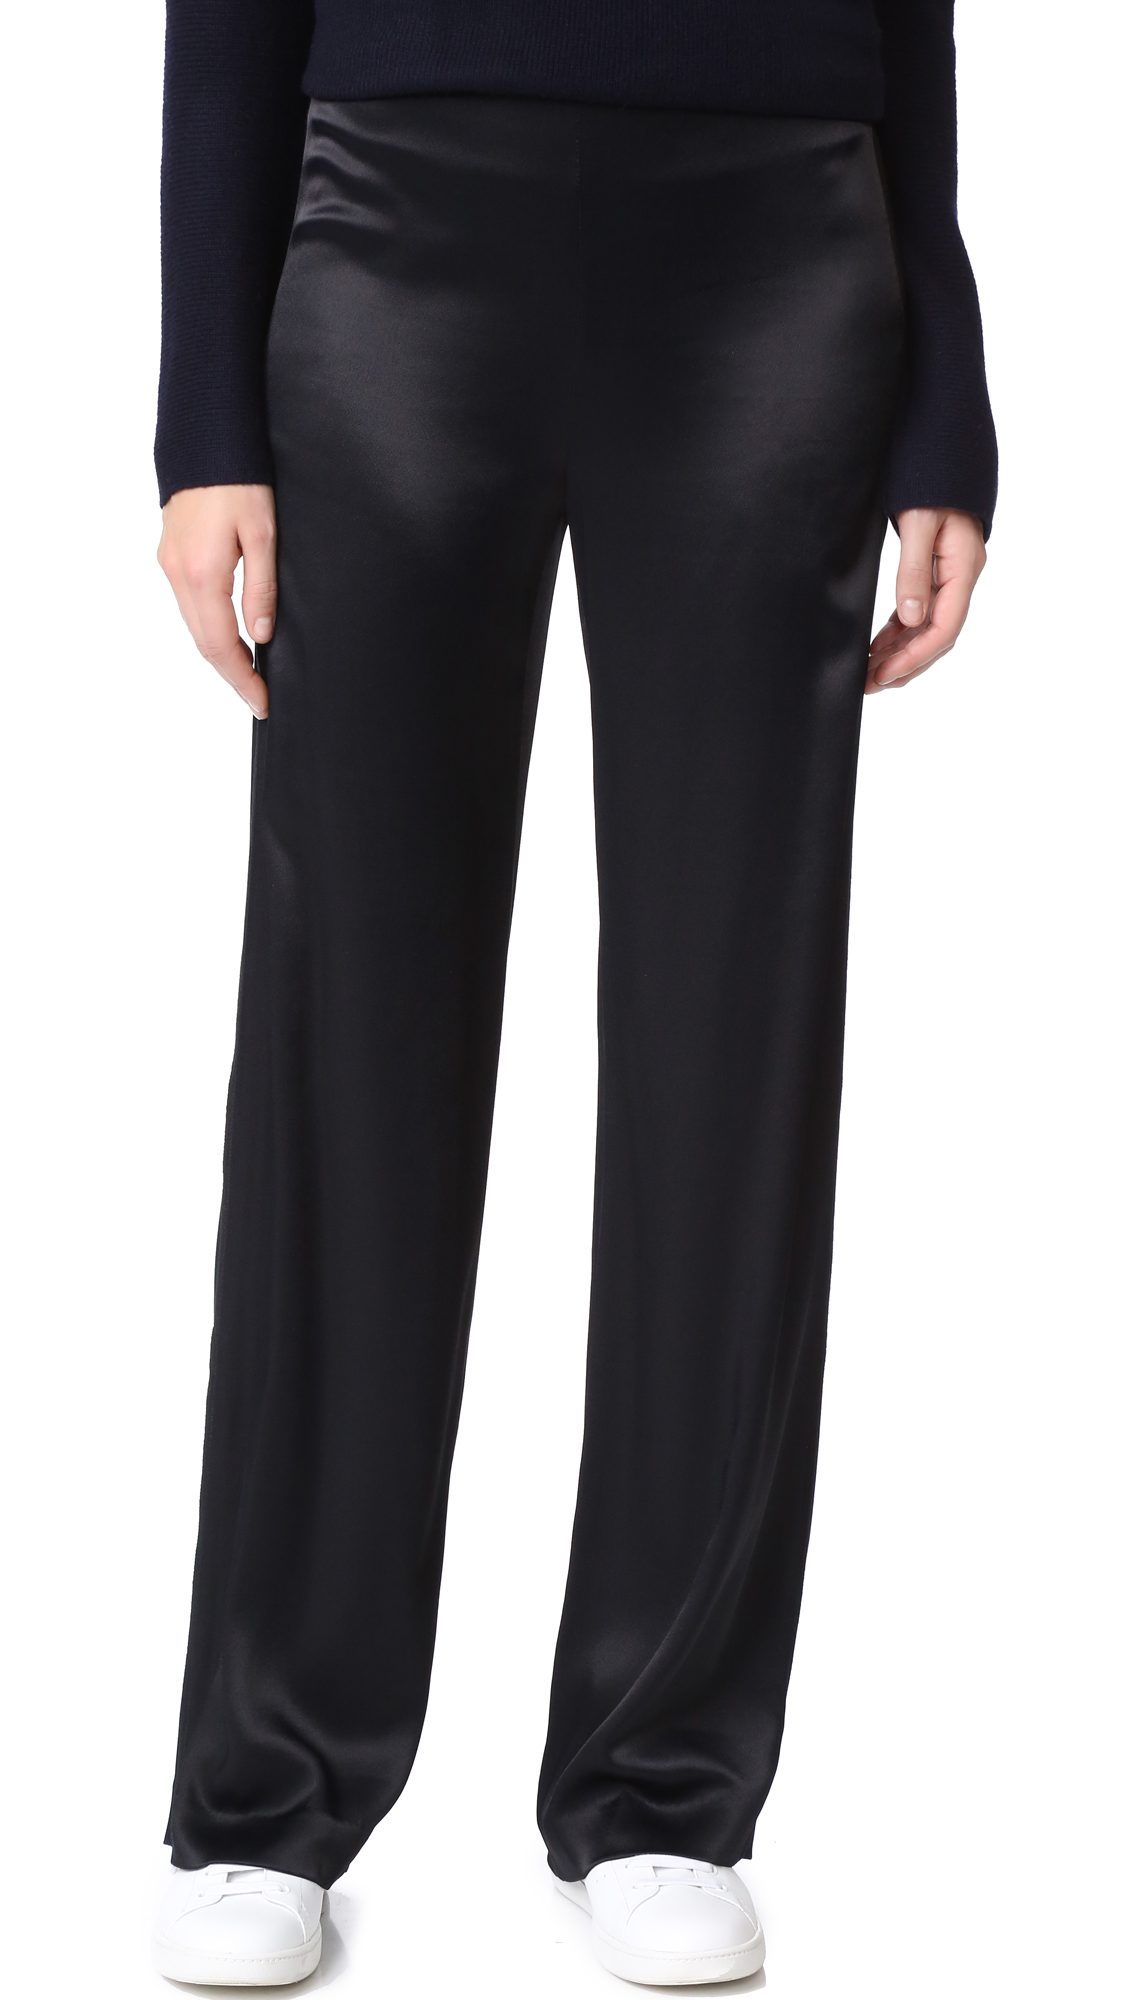 Vince Fluid Wide Leg Pants - Black at Shopbop